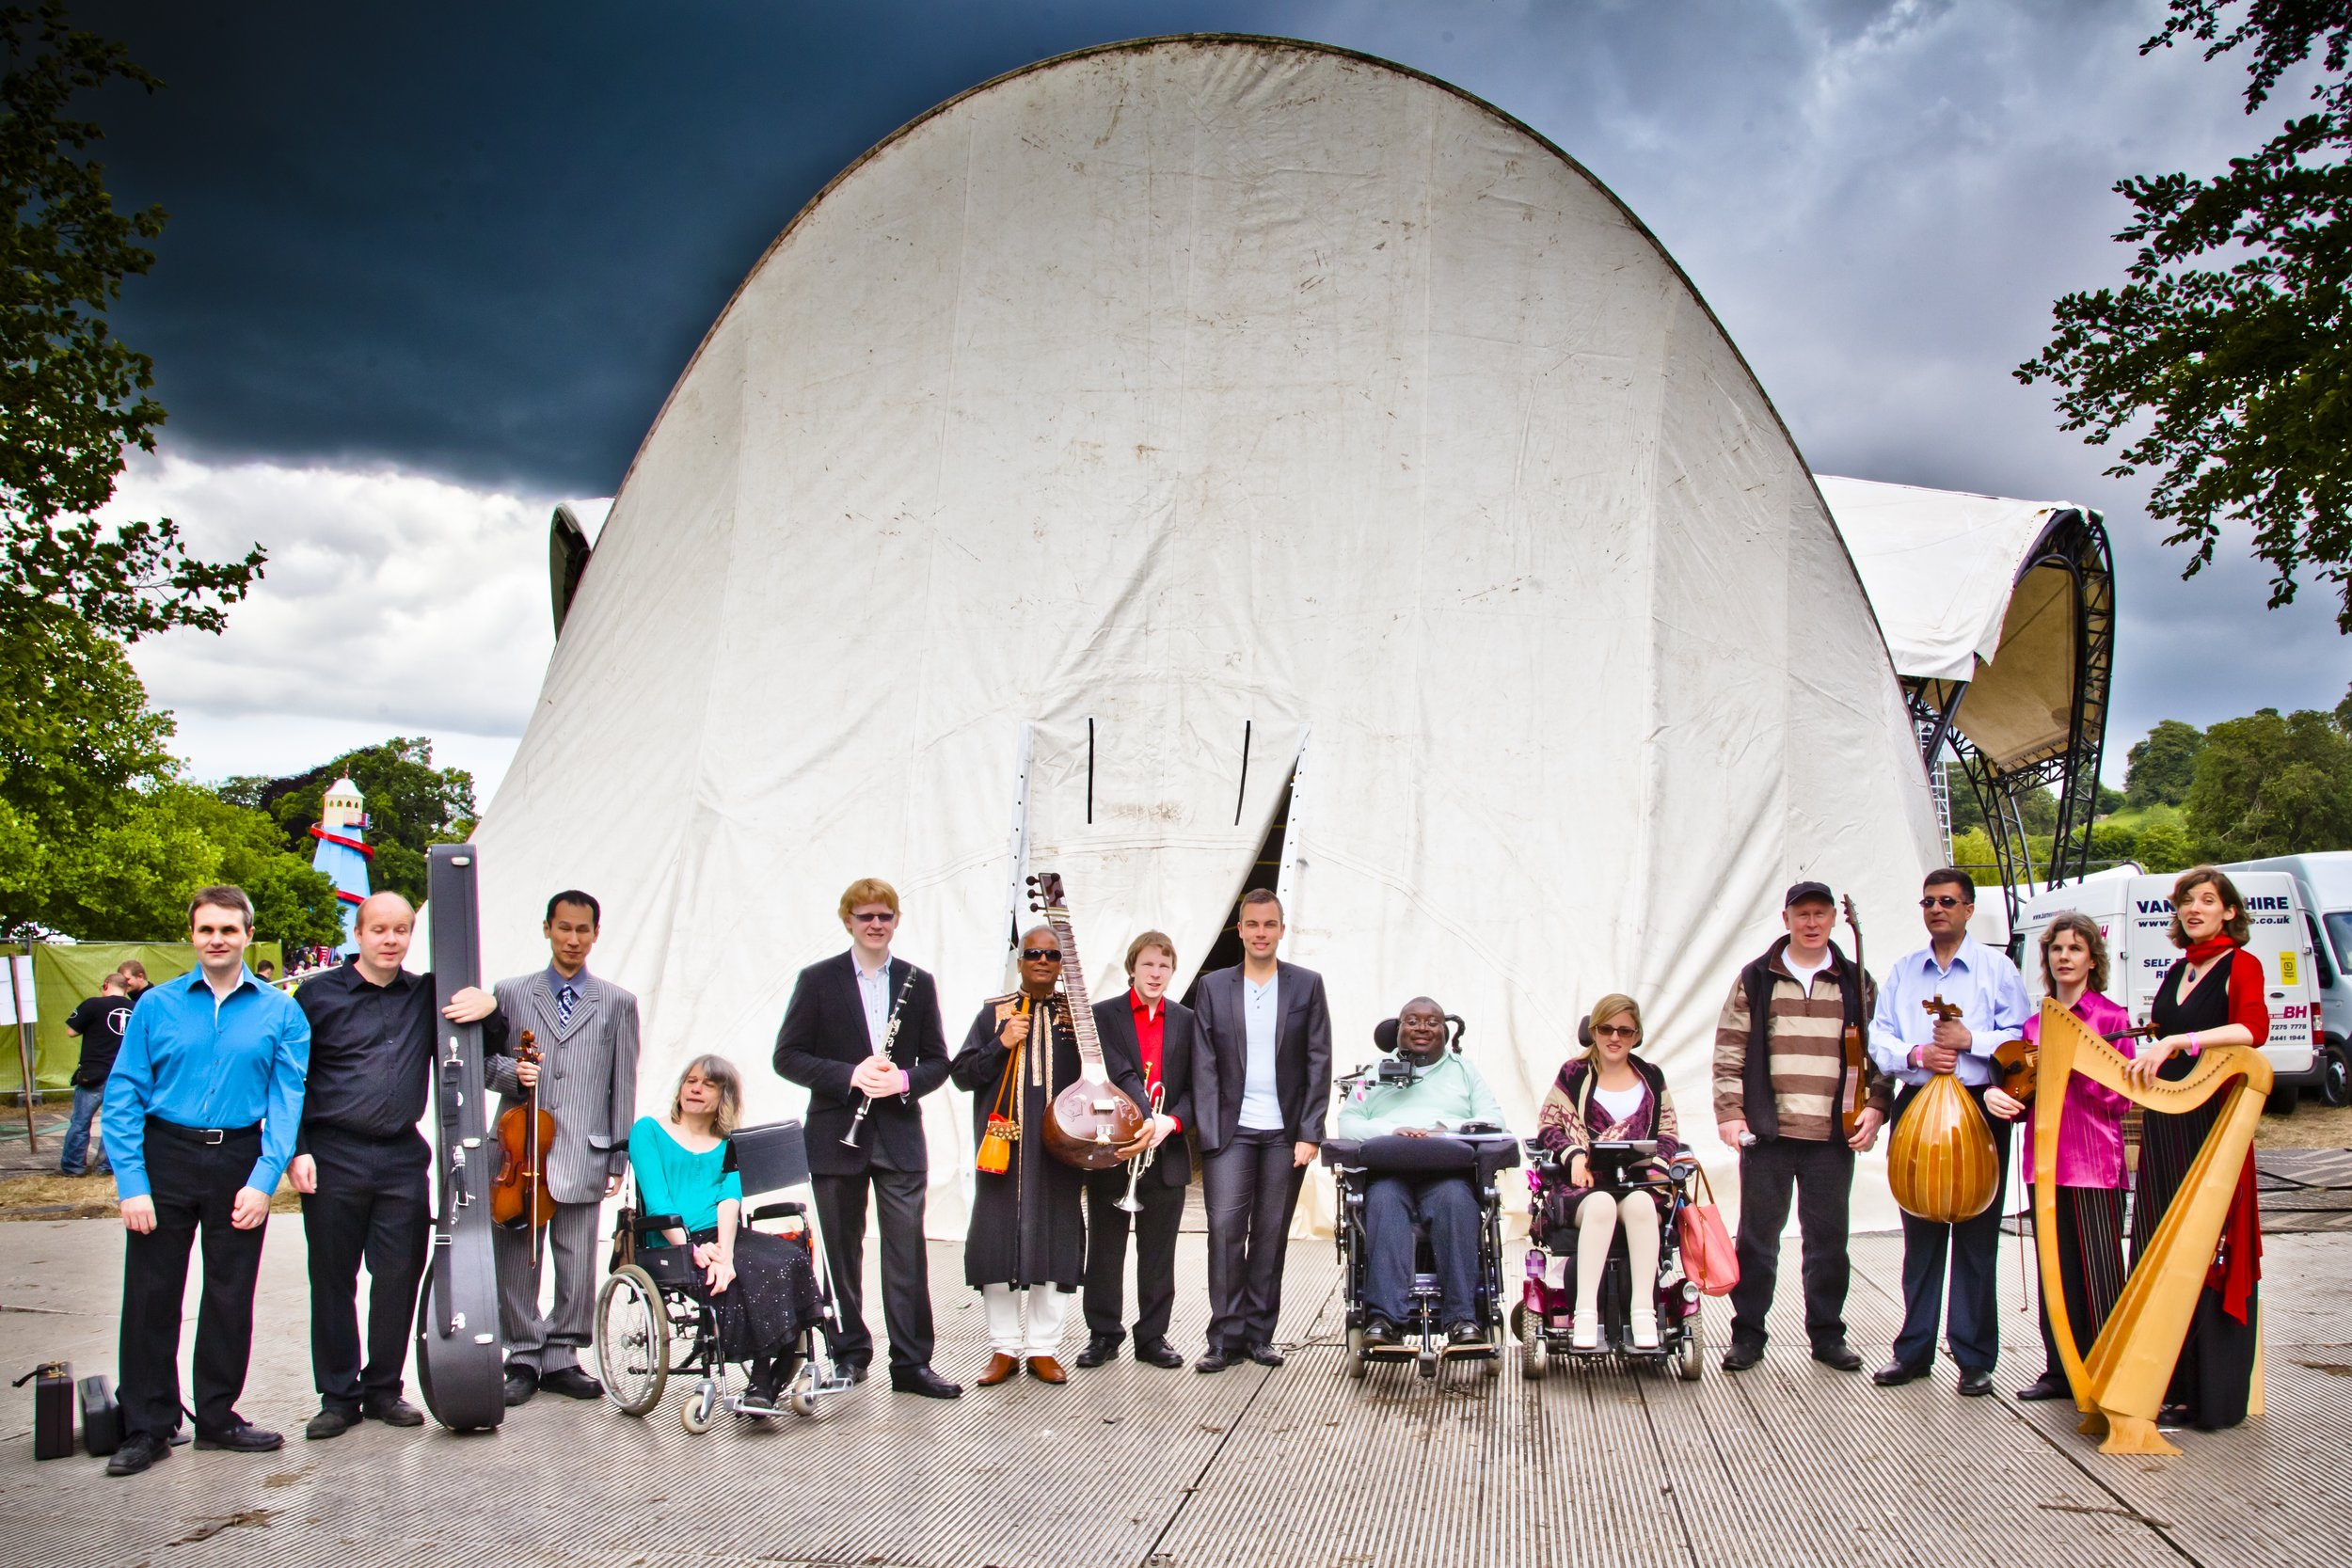 Orchestra in a field-74.jpg